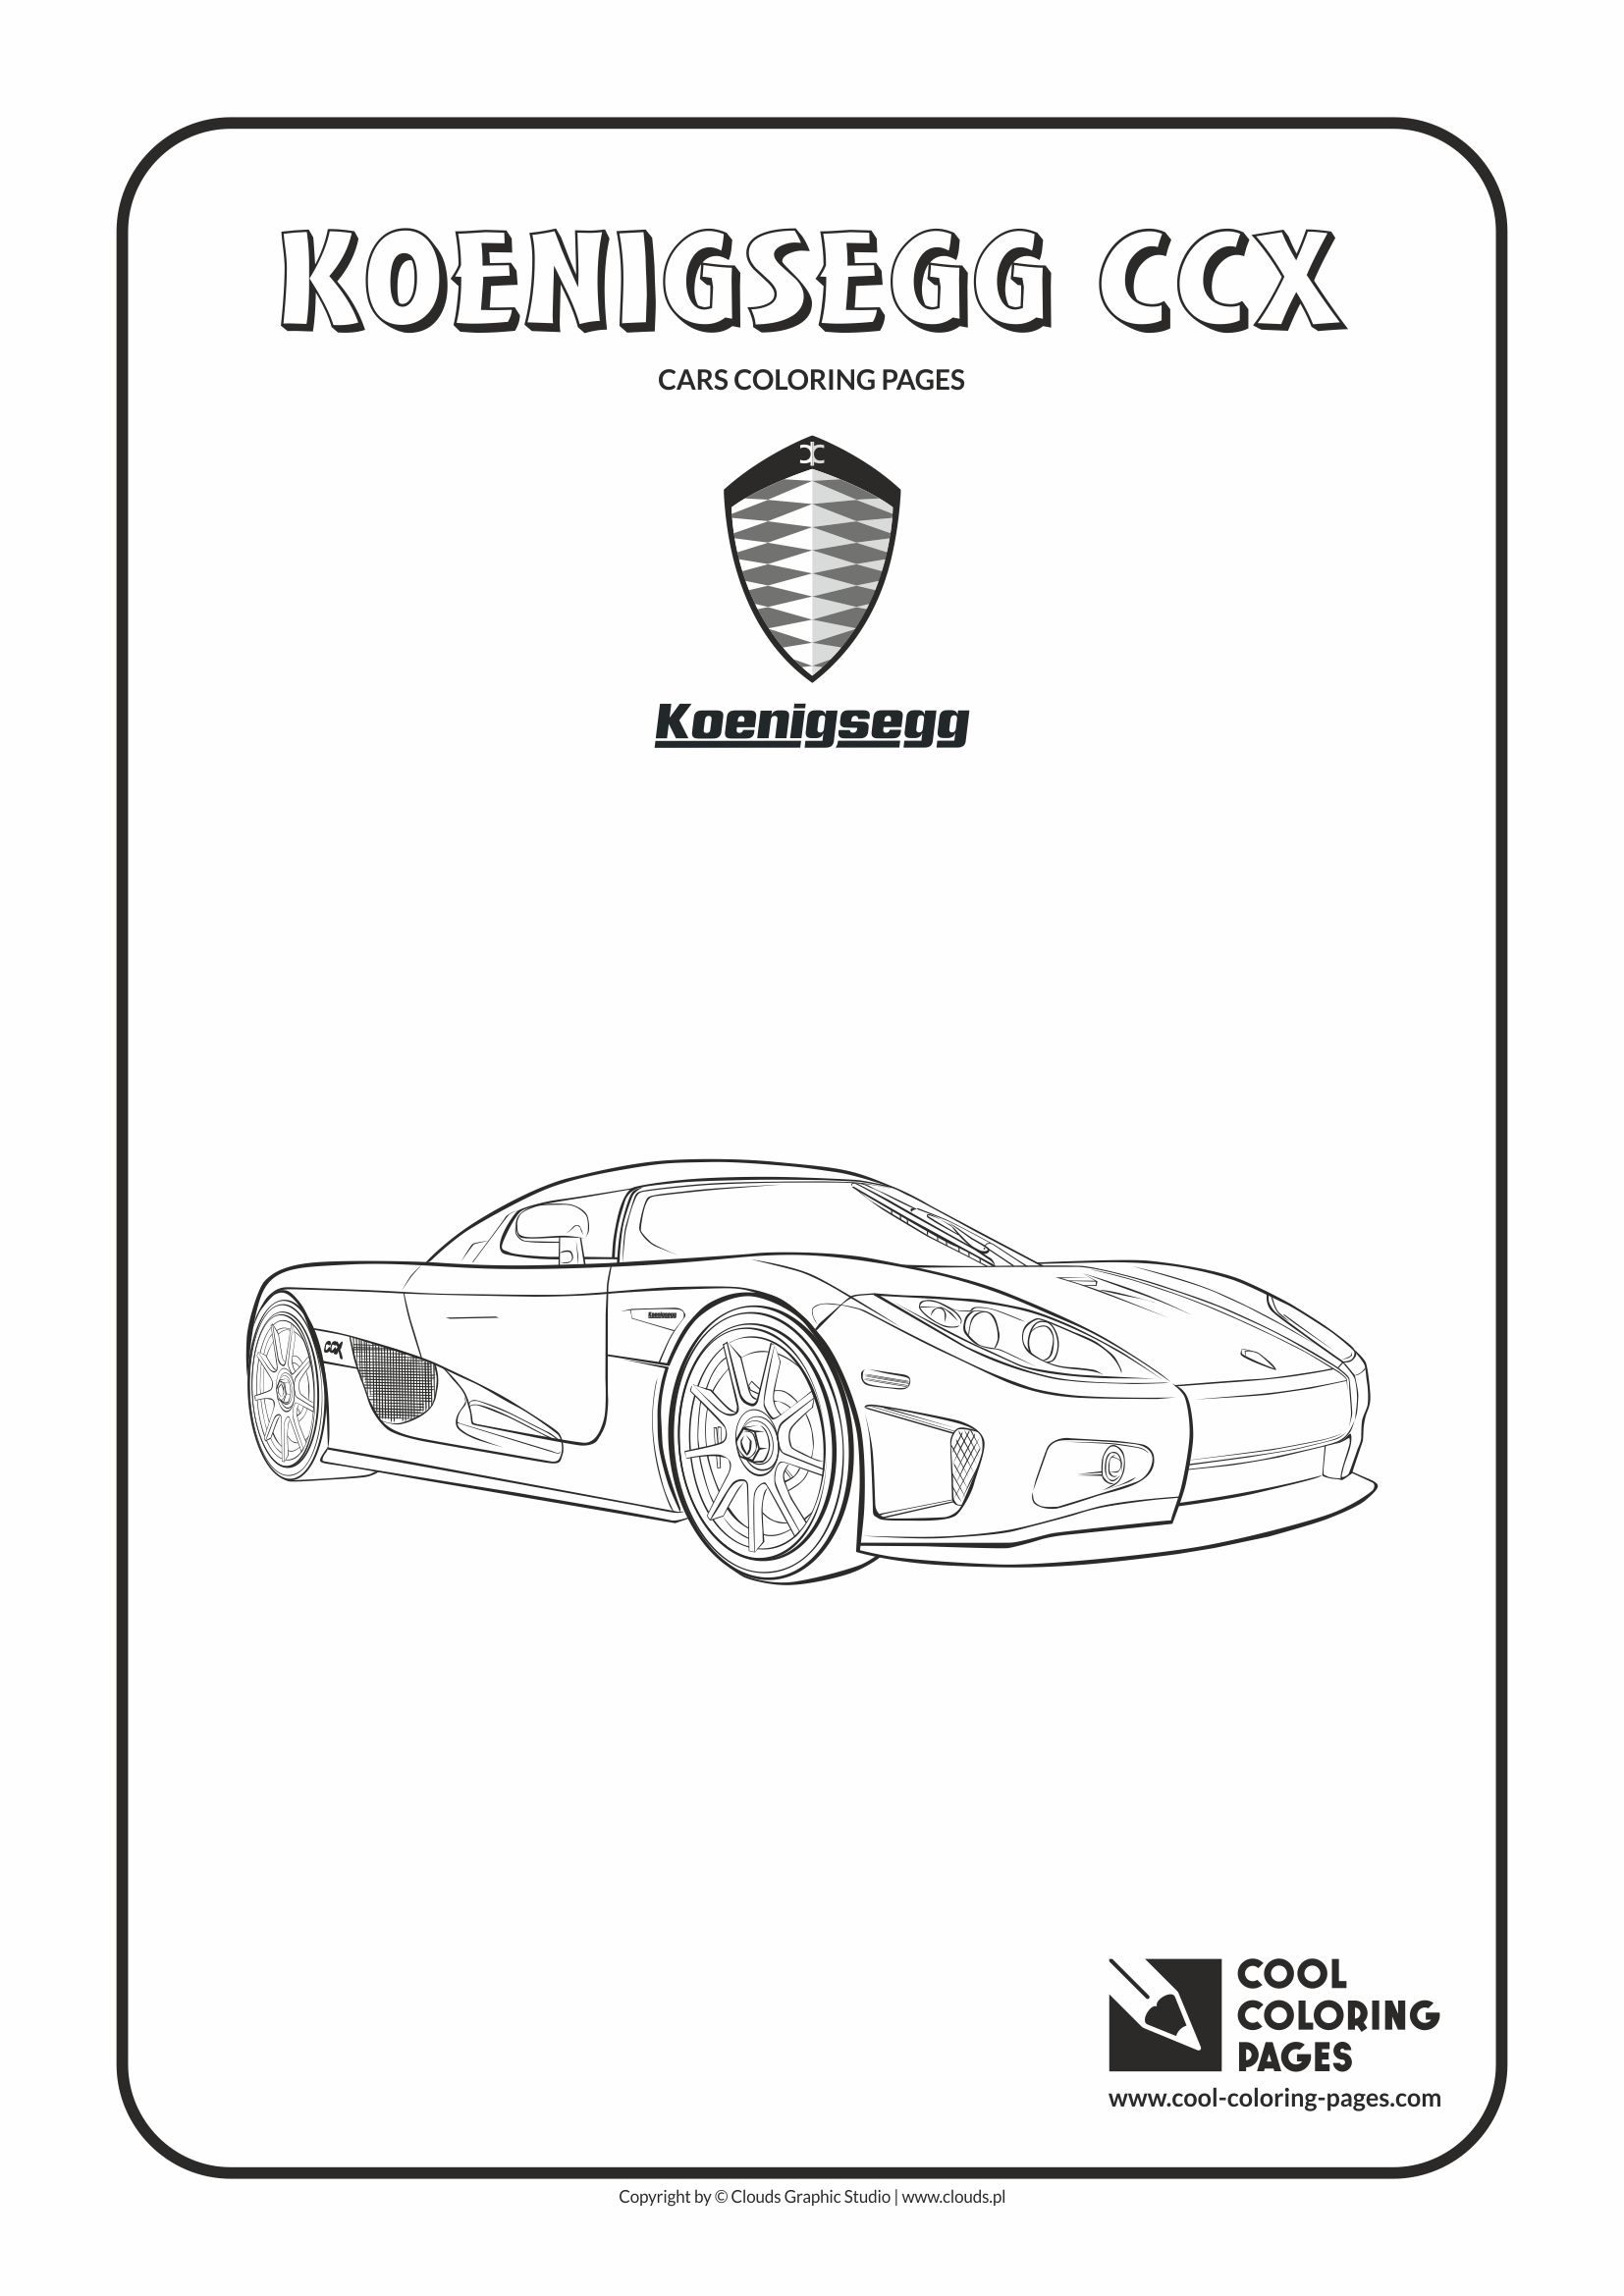 Cool Coloring Pages - Vehicles / Koenigsegg CCX / Coloring page with Koenigsegg CCX